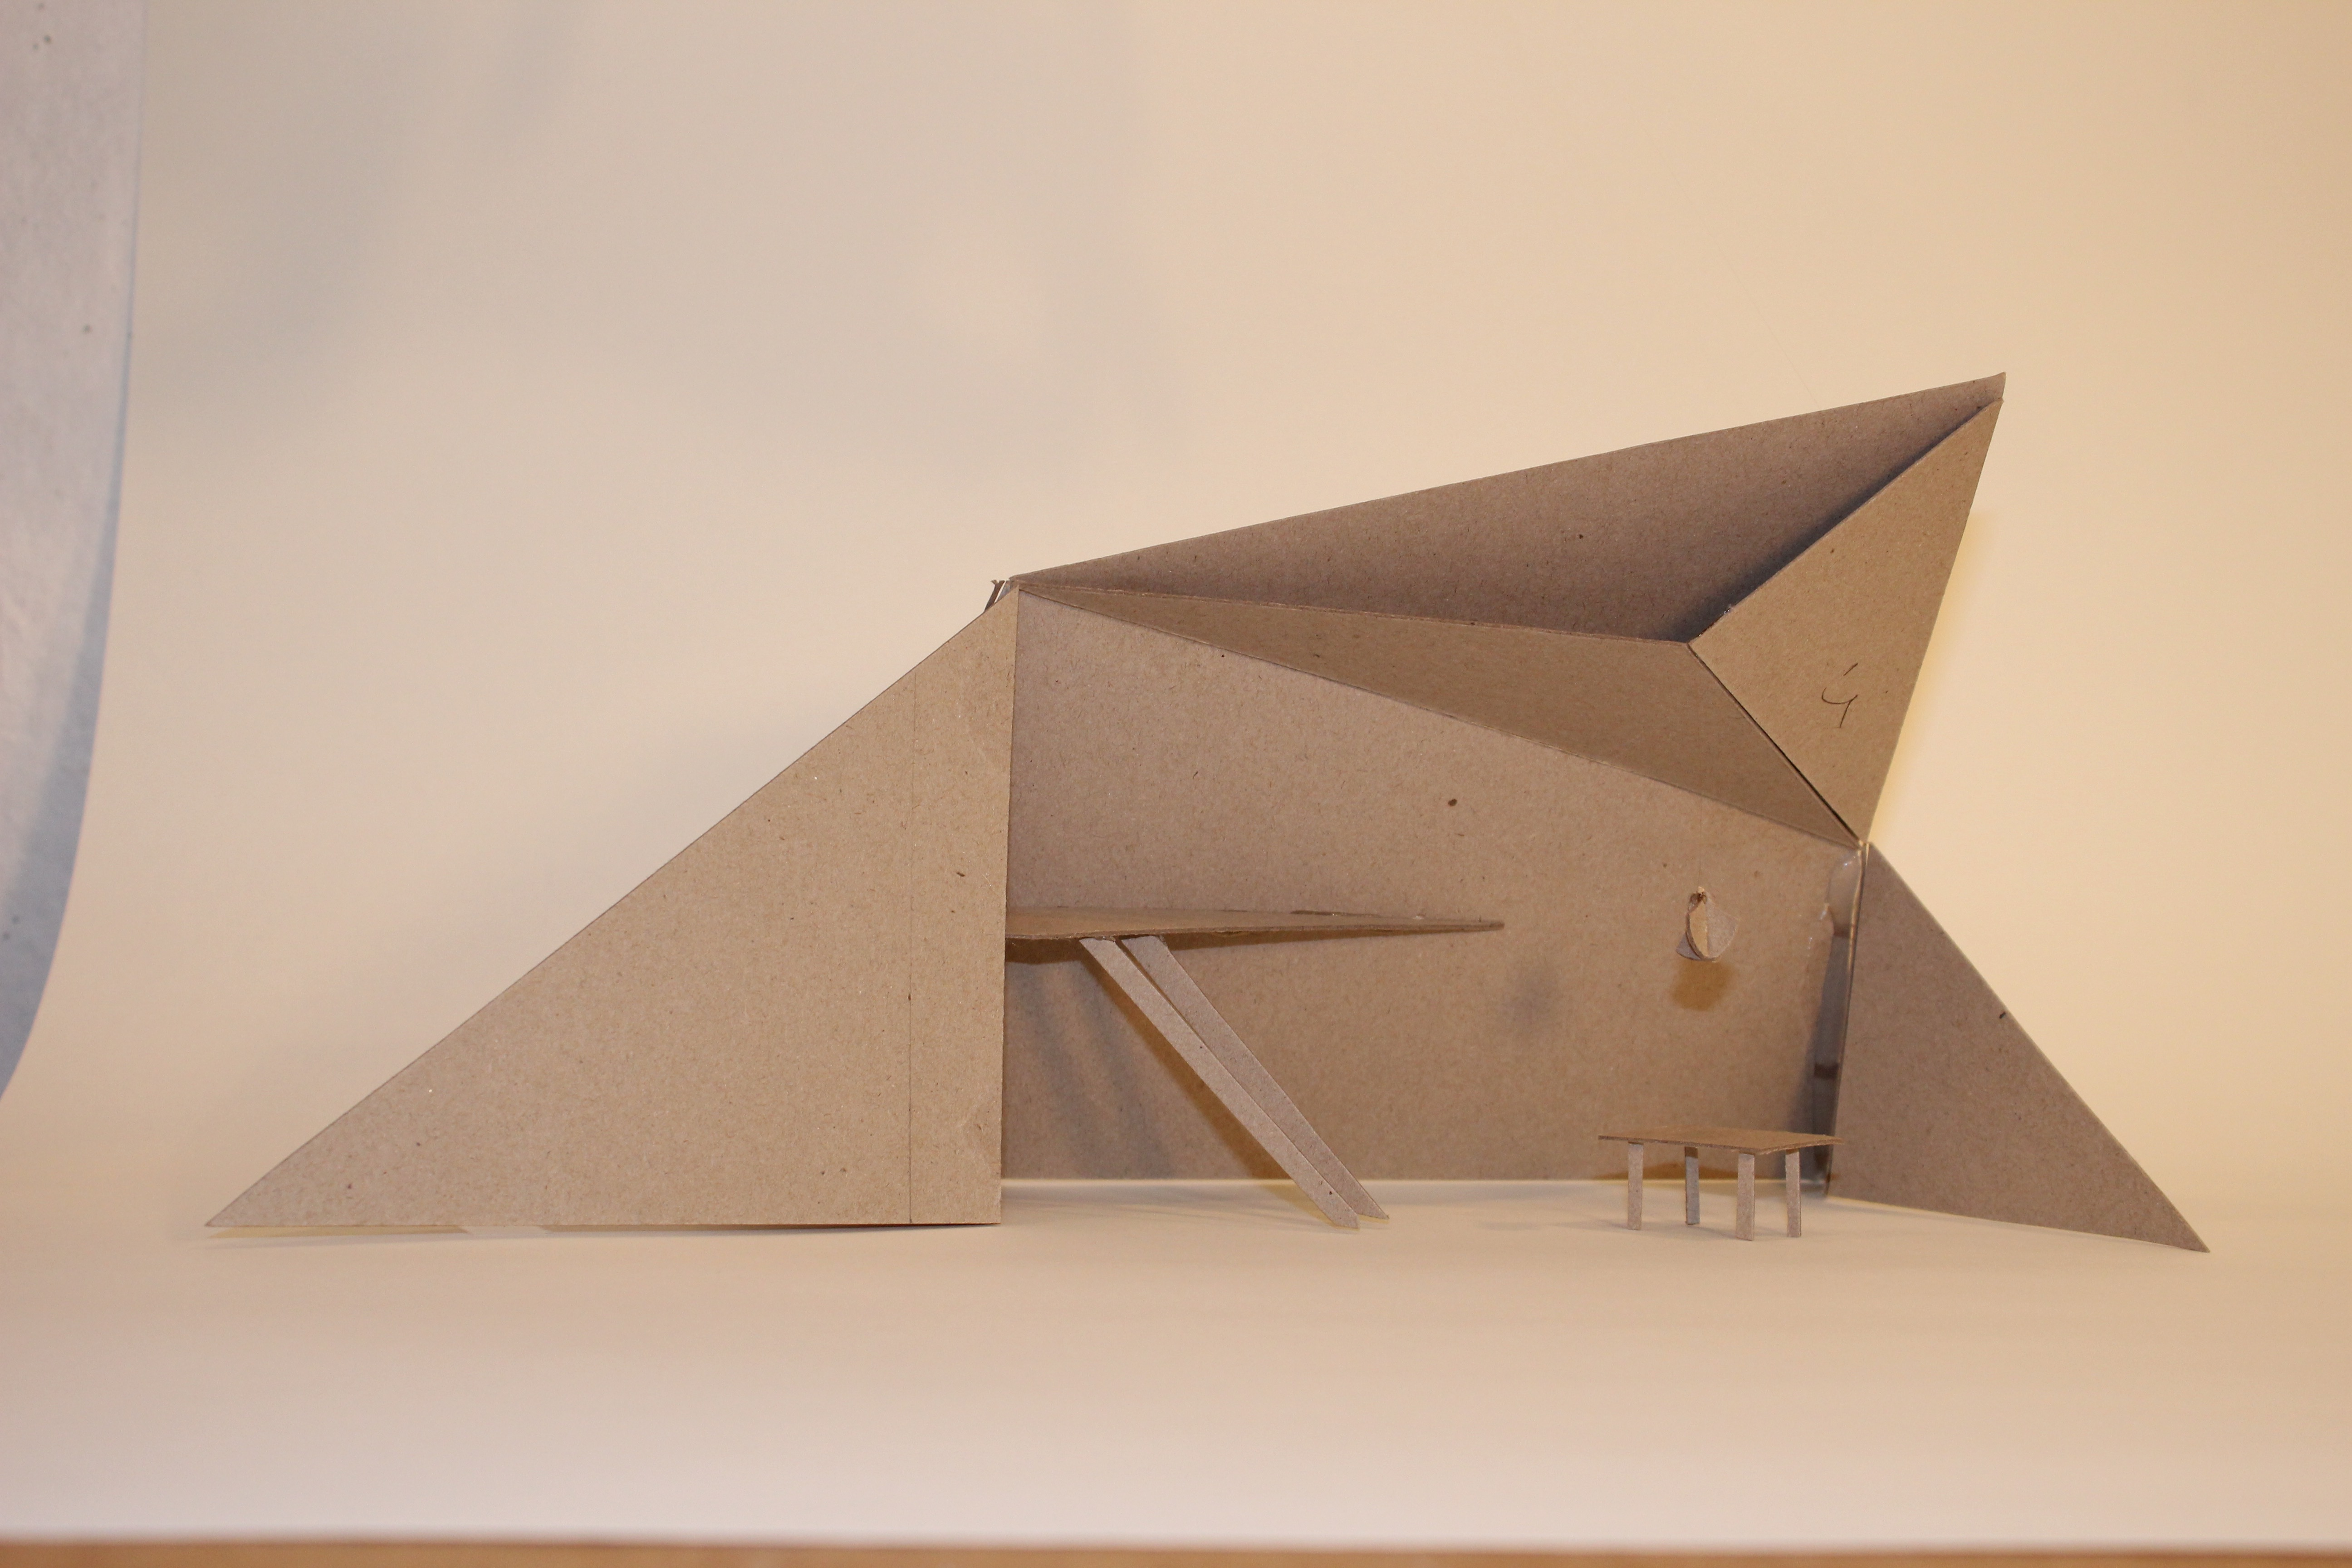 'Outside the Box' Project - View B